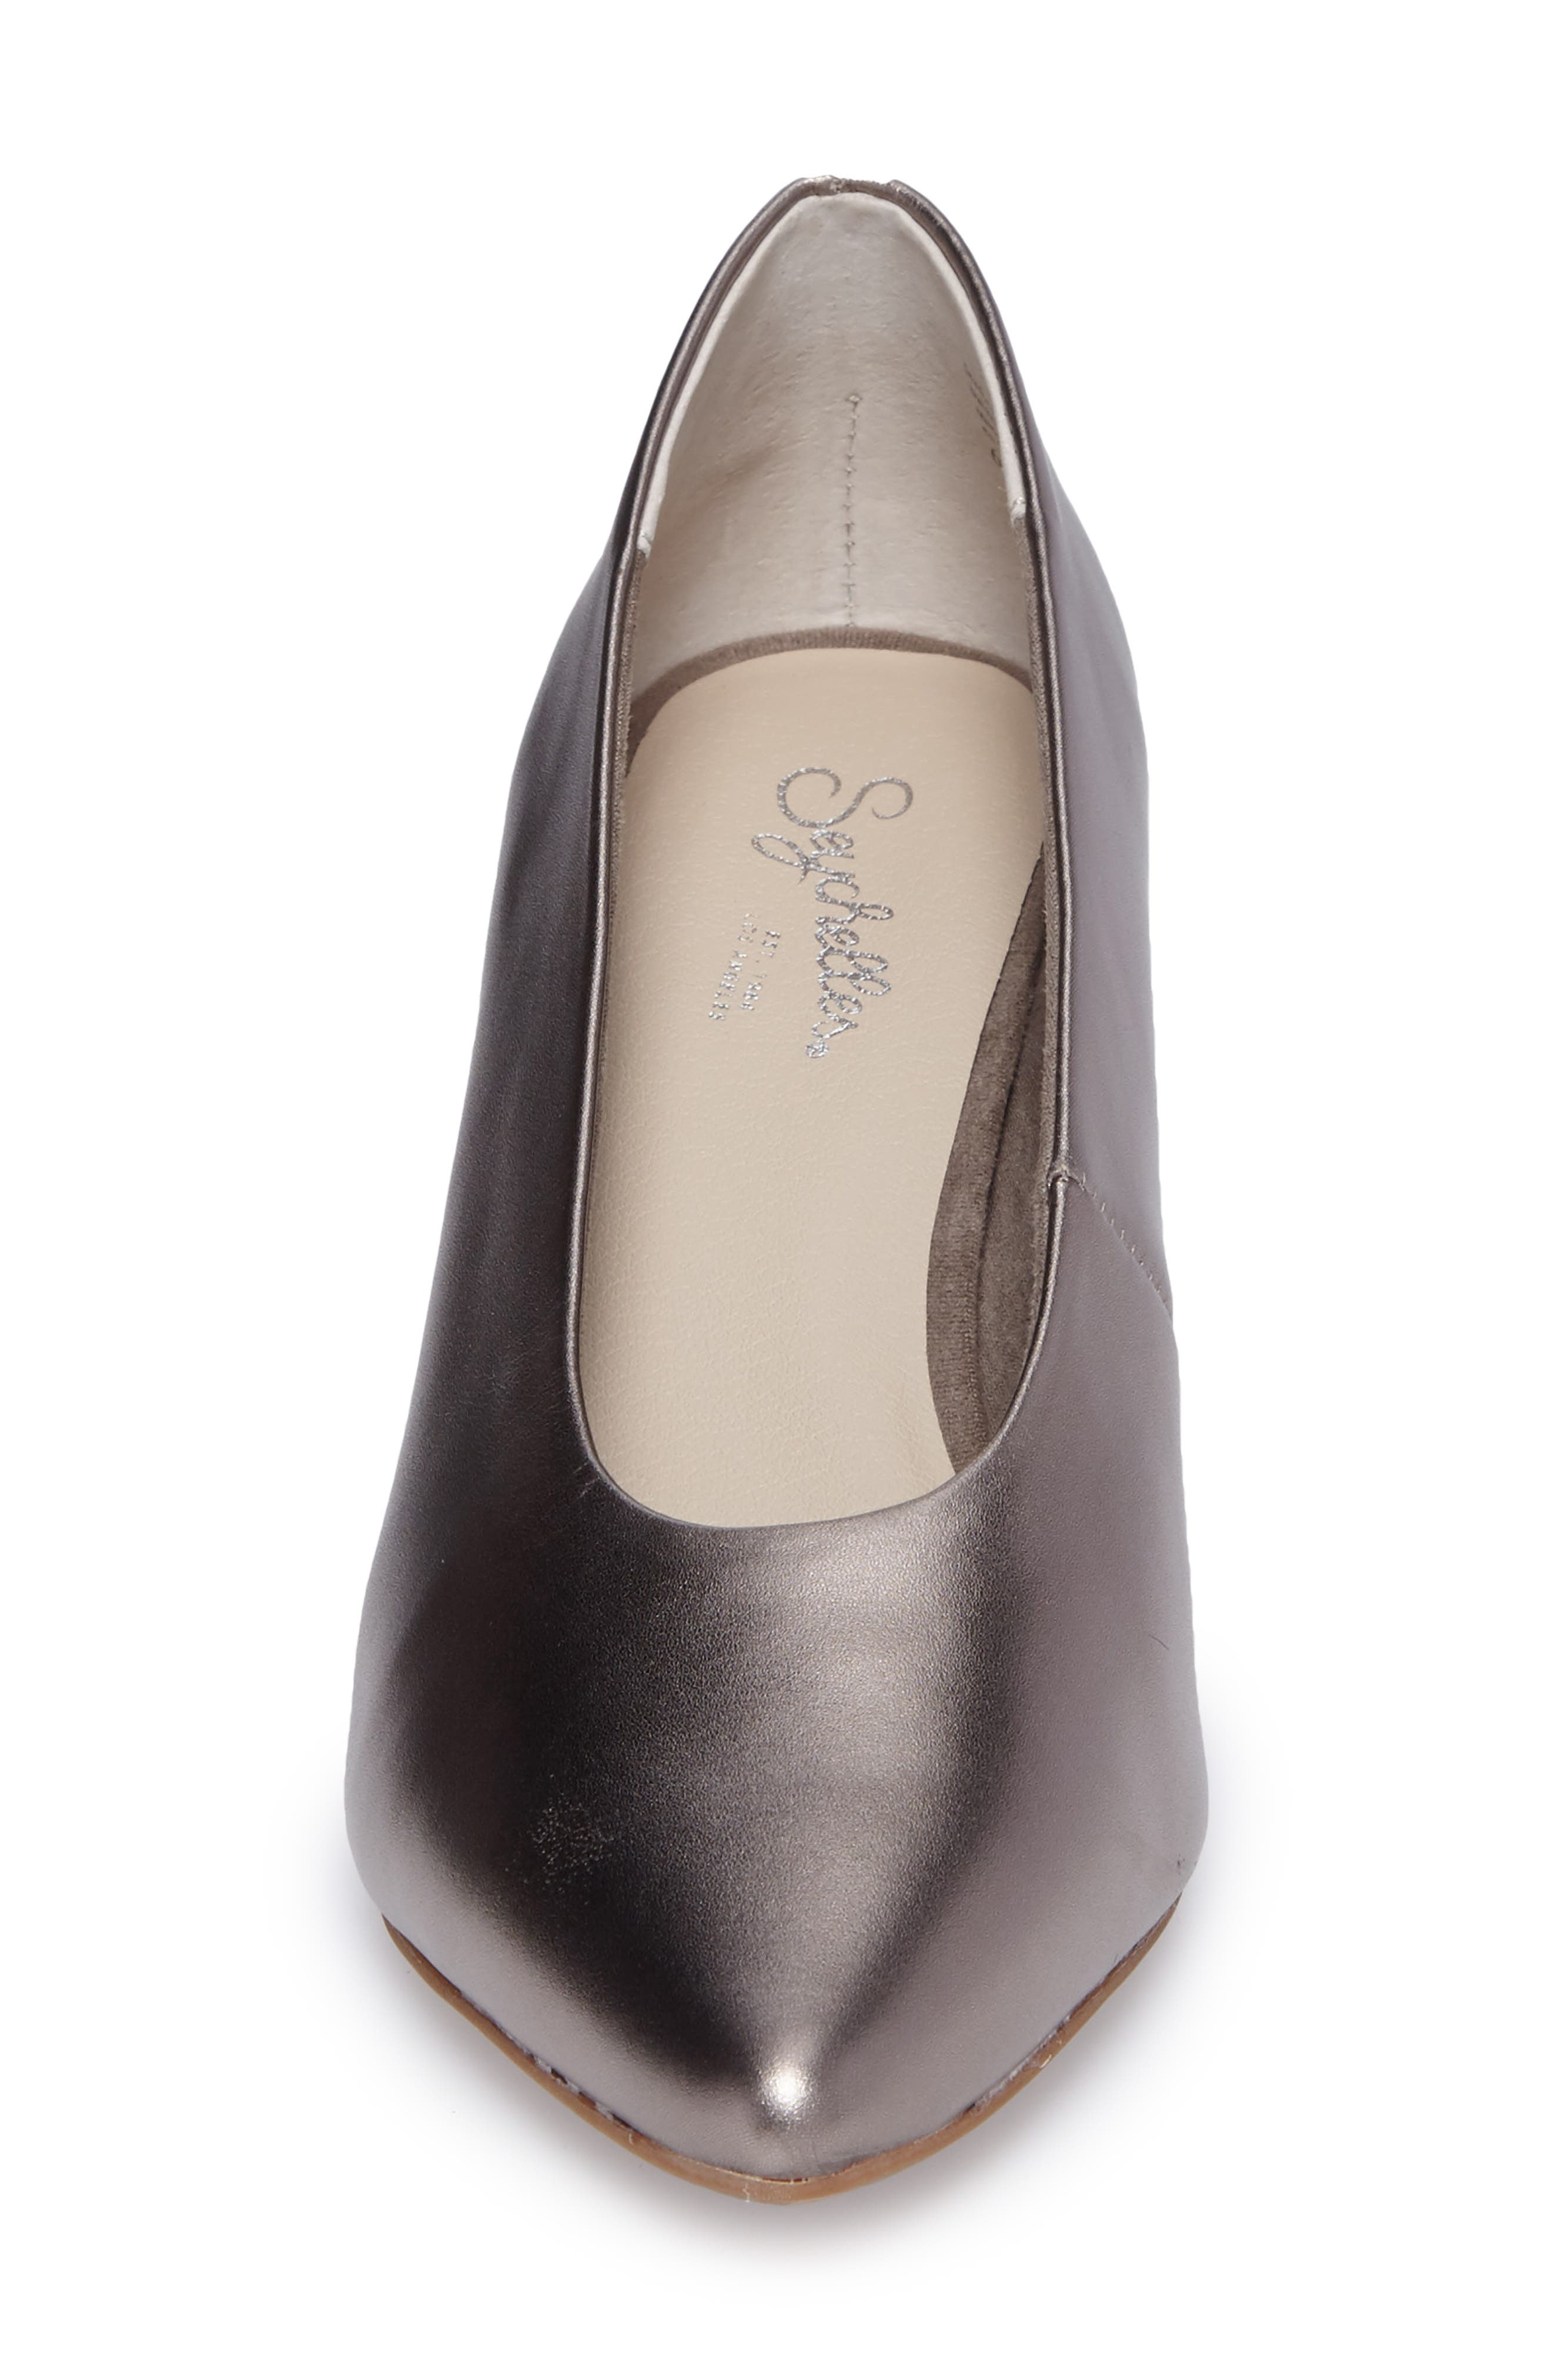 Rehearse Pointy Toe Pump,                             Alternate thumbnail 4, color,                             Pewter Leather